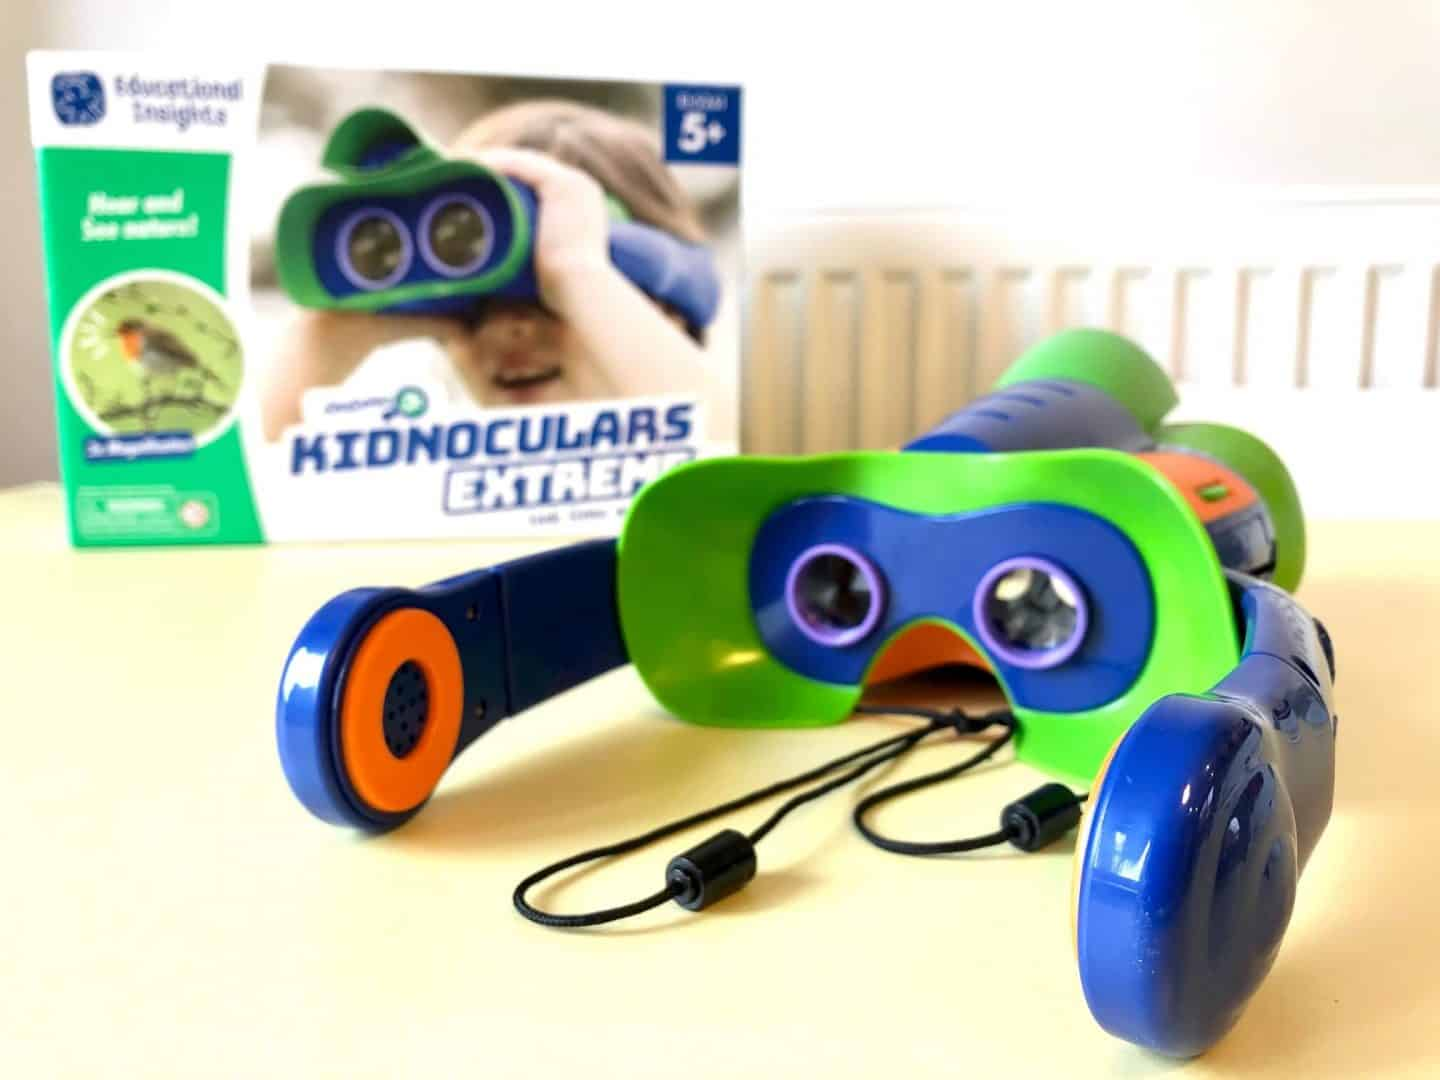 Colourful  Kidnoculars Extreme